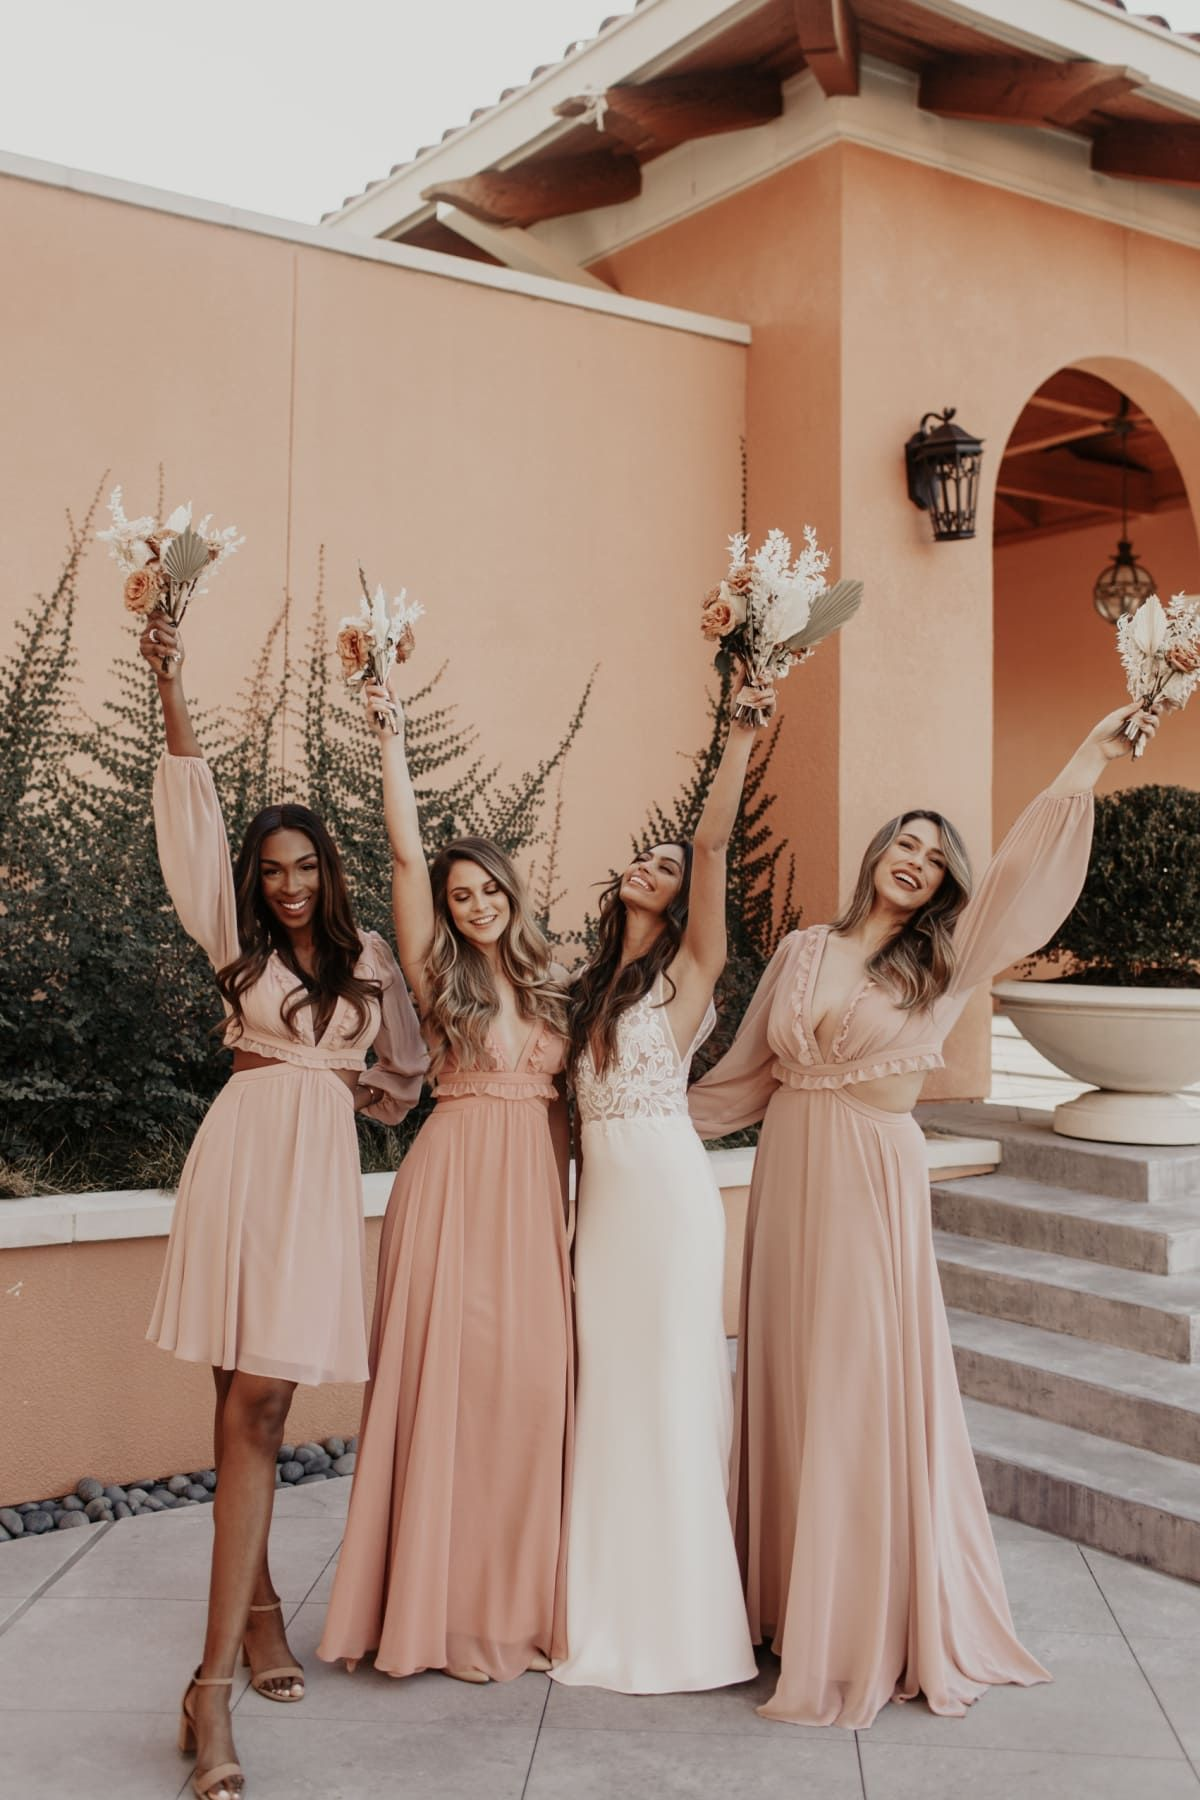 The New Lovely Bridesmaid Dress Collection From Dessy Dress For The Wedding In 2020 Bridesmaid Dresses Boho Peach Bridesmaid Dresses Bridesmaid Dress Collection